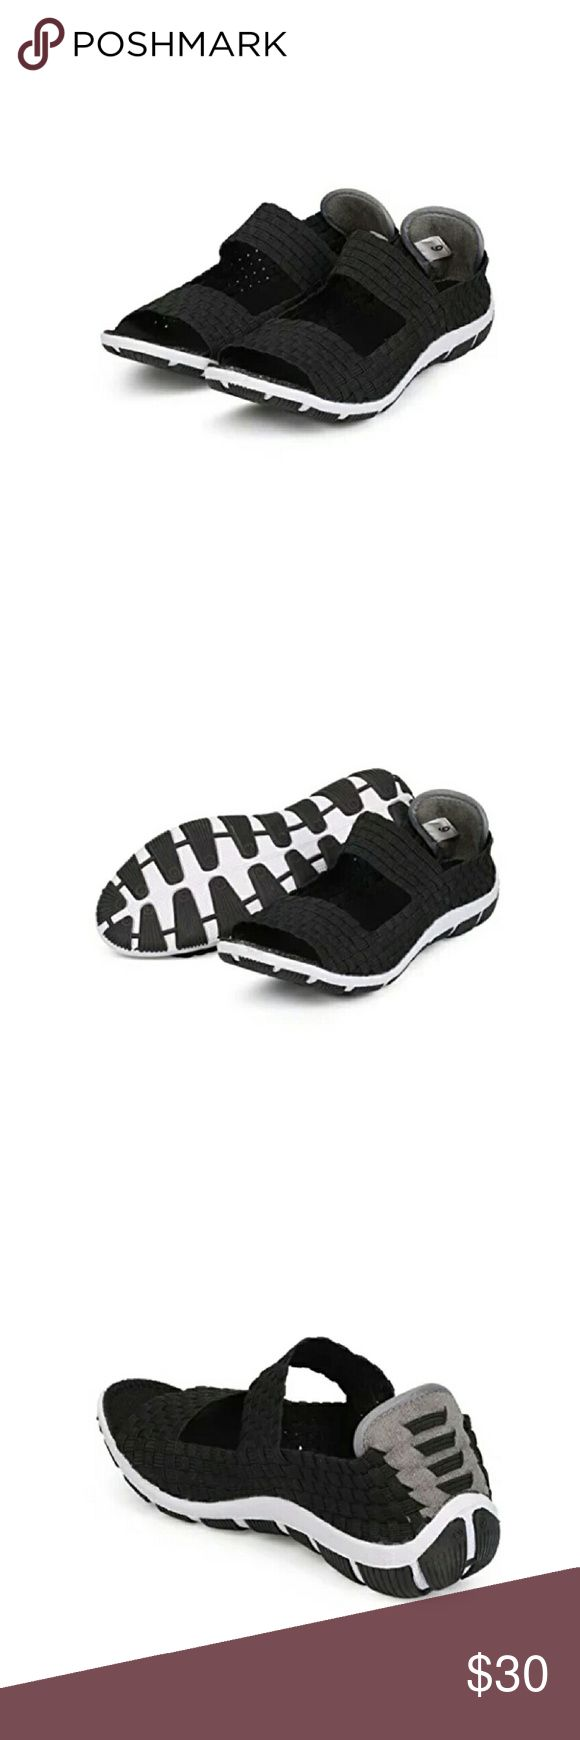 """🆕Nature Breeze Women Woven Sneakers Designed with metallic elastic Lycra upper,open toe, mary jane strap at vamp, padded backpanel, rubber outside, special ergonomic design for extra comfort.  Material:Lycra (man-made) Measurement (tested Sz:9;approx) Heel:1"""", Toe:2.25"""" Sole/padding:Traded non-skid sole/cushioned foot bed with padded. Brand new never been worn. Nature Breeze  Shoes Sneakers"""